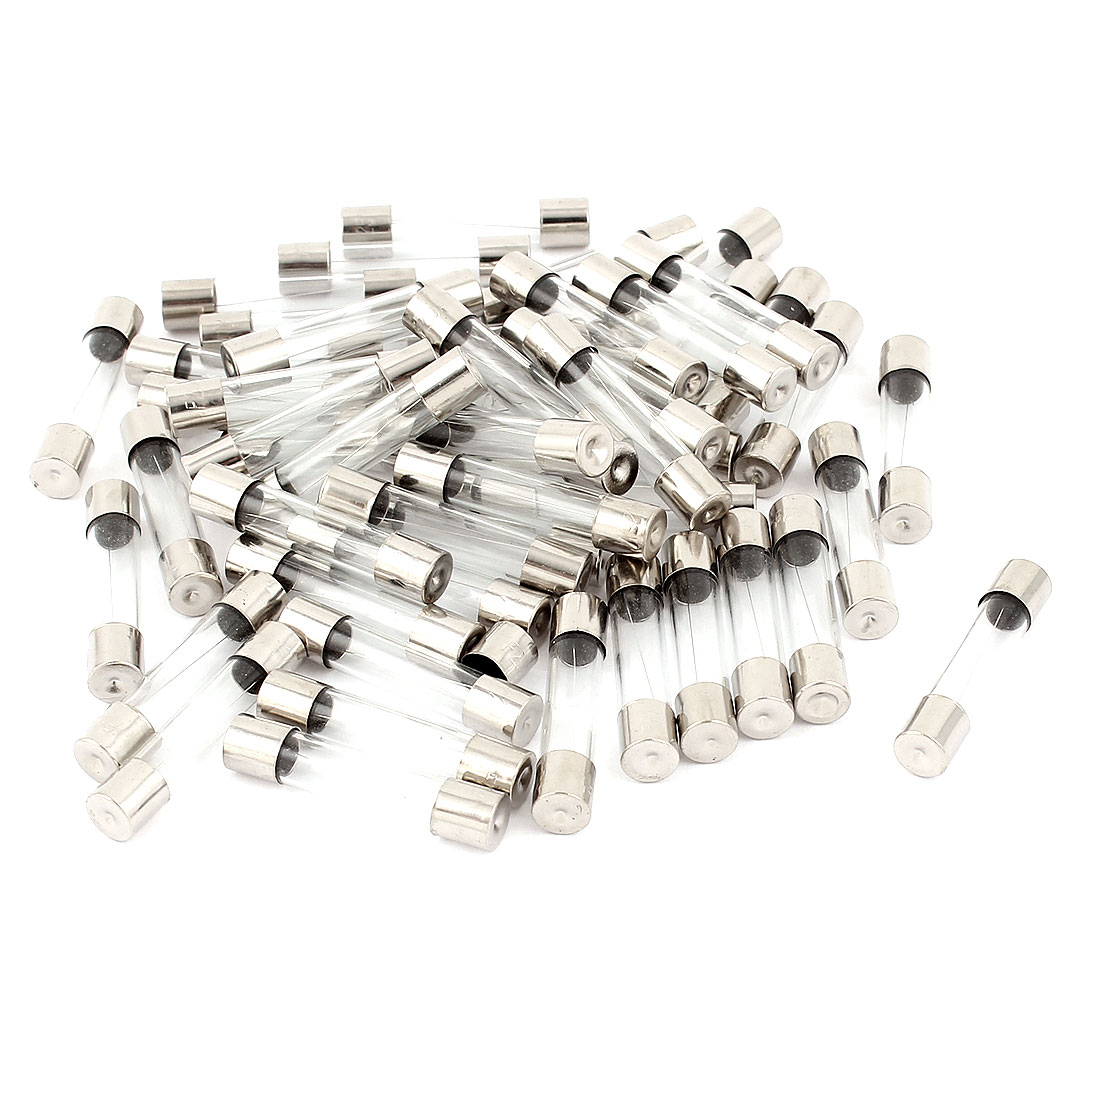 125V 2.5A Fast Quick Blow Glass Tube Fuses 6mm x 30mm 50 Pcs